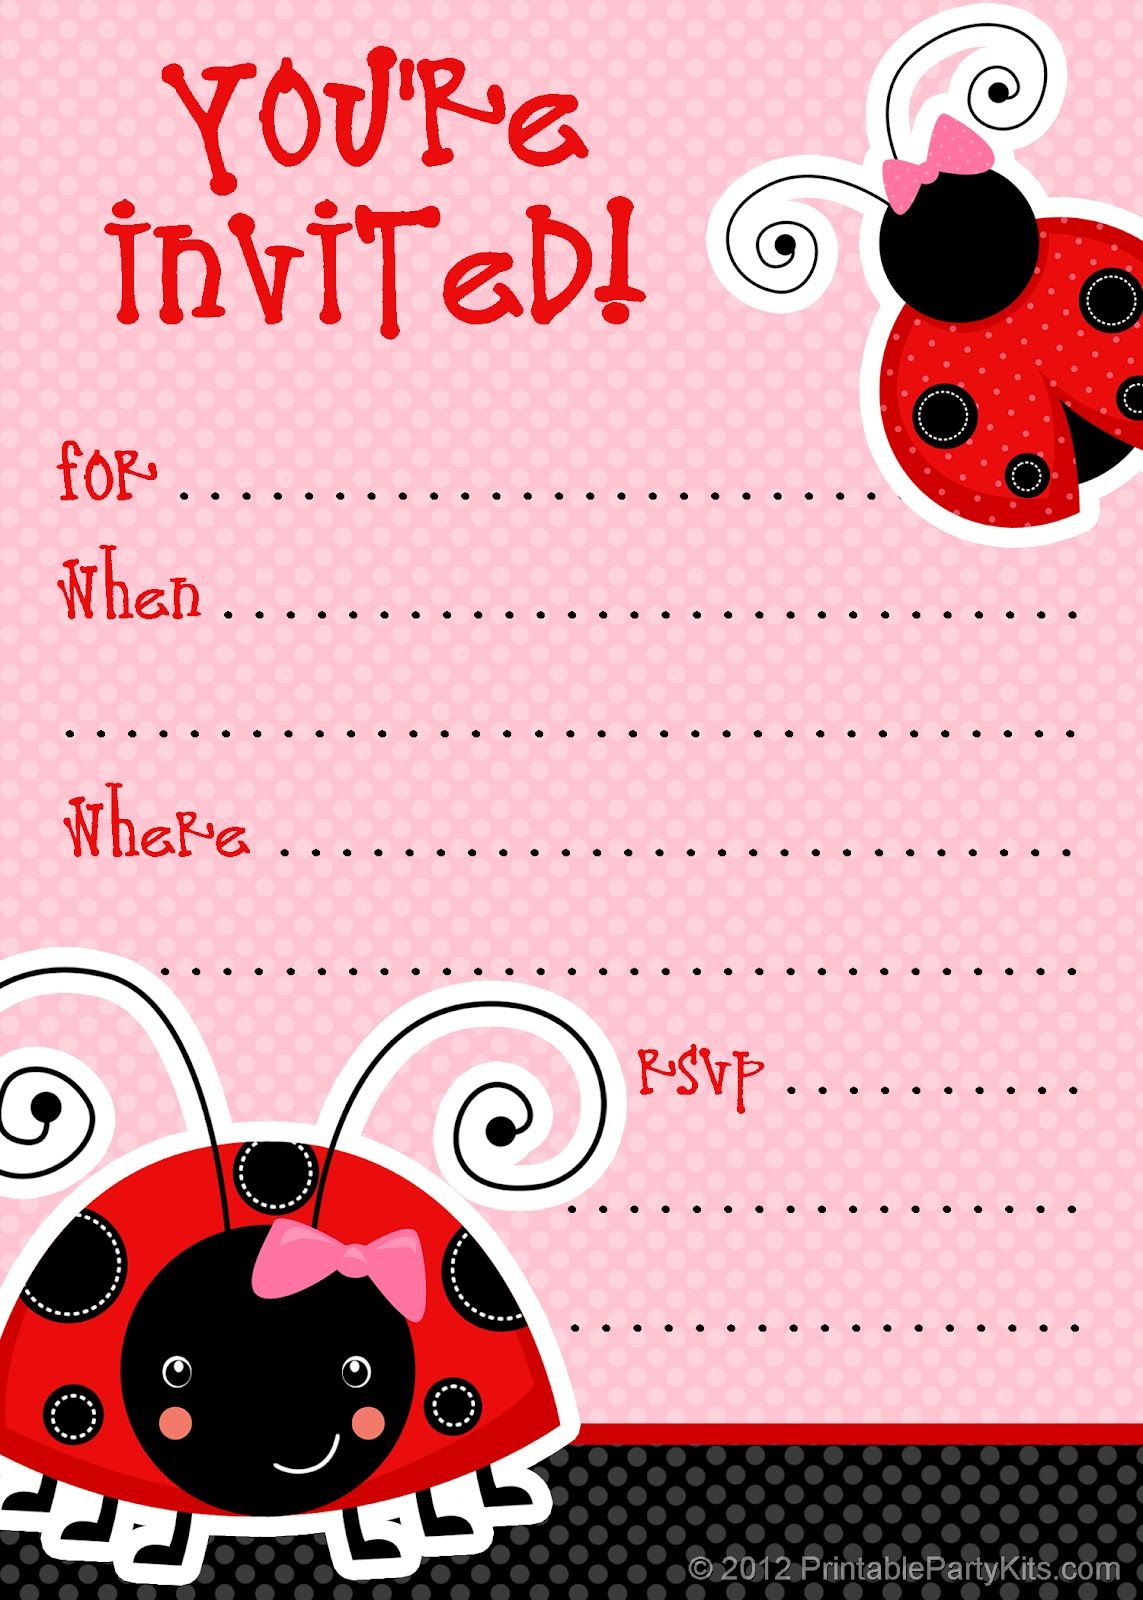 Free Printable Party Invitations: Free Ladybug Invite Template - Free Printable Ladybug Baby Shower Invitations Templates